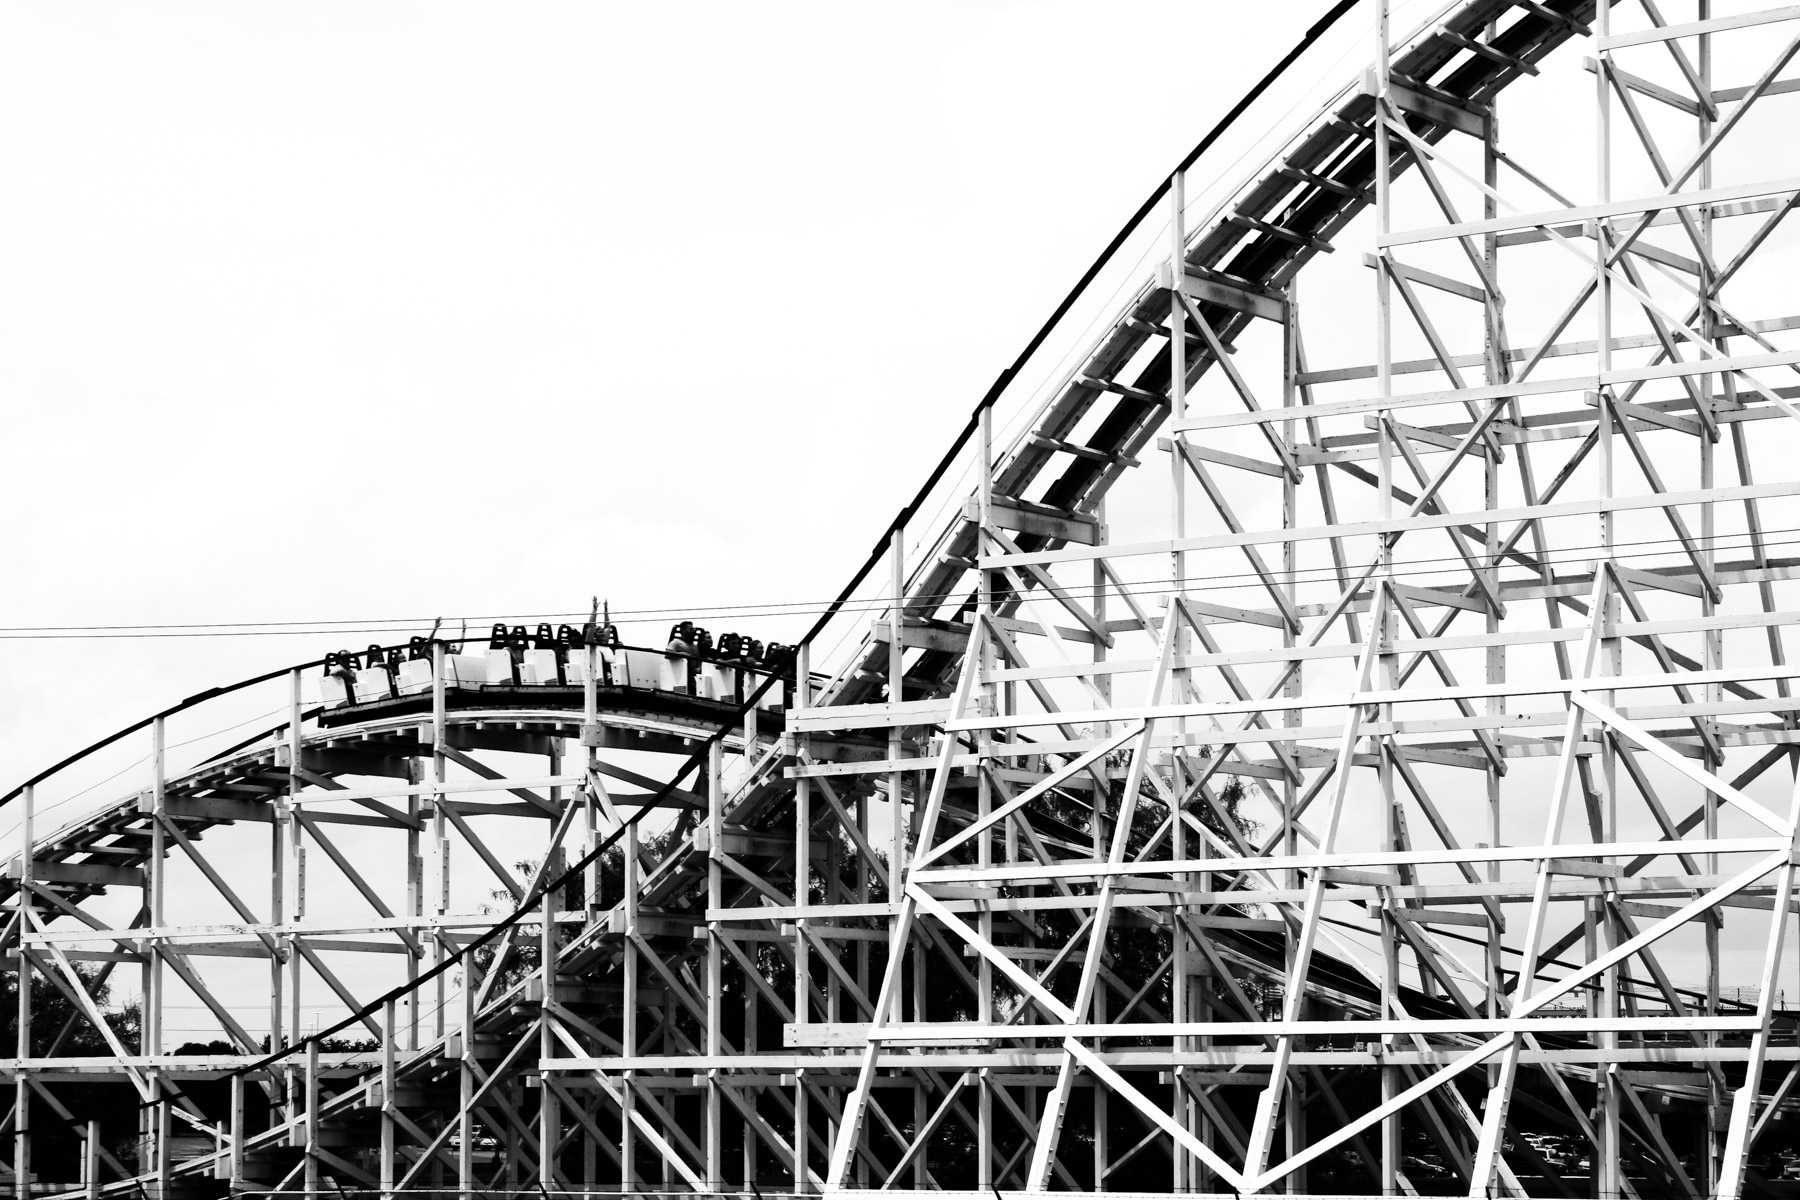 The Judge Roy Scream roller coaster at Six Flags Over Texas, Arlington, Texas.